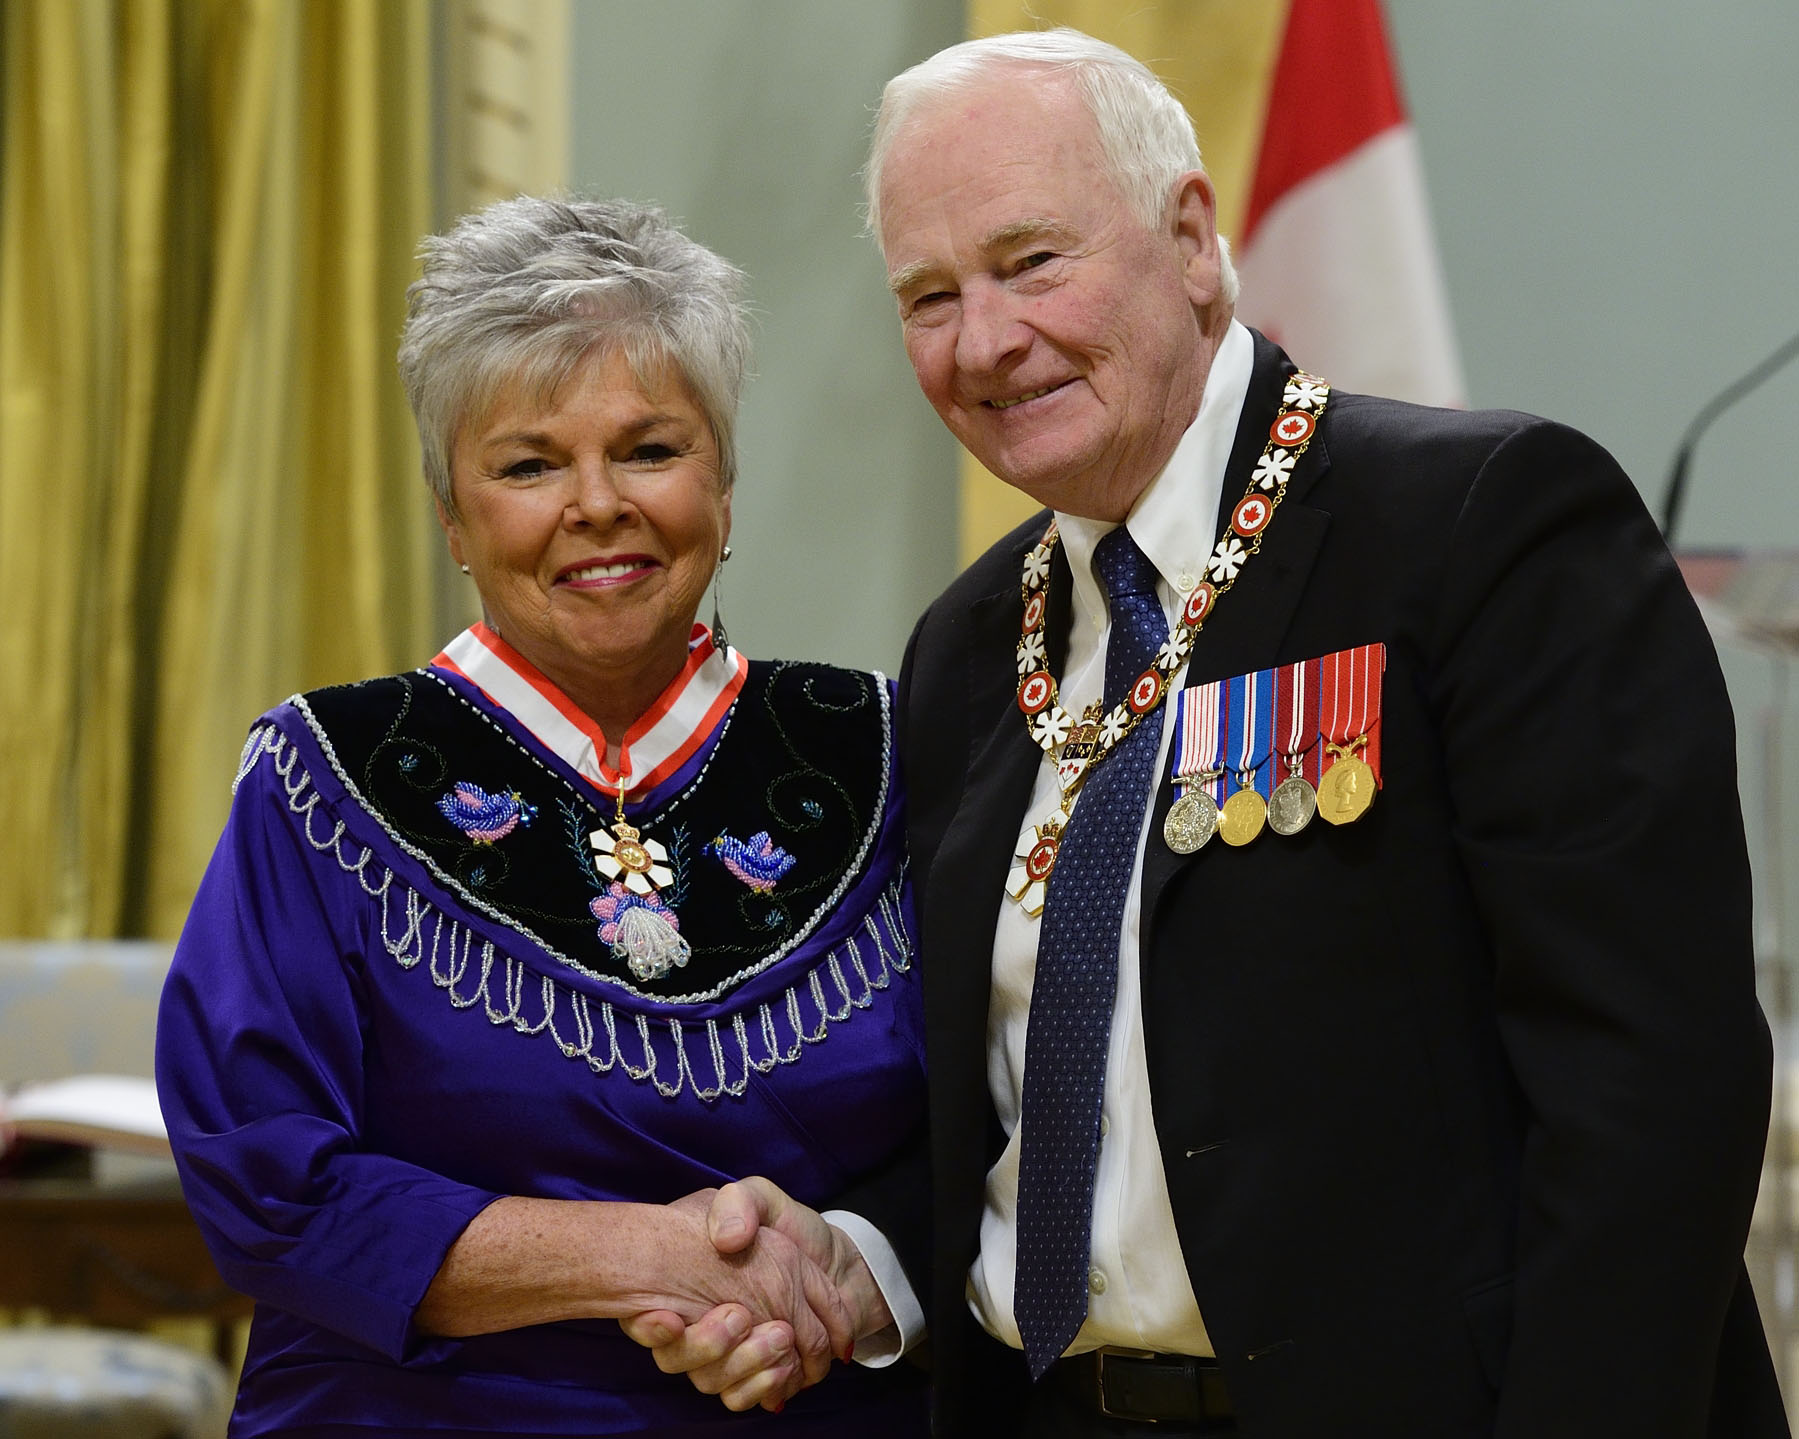 Roberta Jamieson has devoted her life to advancing the goals and aspirations of Indigenous peoples across Canada. She is a lawyer, mentor, expert in non-adversarial conflict resolution, former elected chief of the Six Nations of the Grand River Territory, and president and CEO of Indspire. In the latter role, she has transformed this Indigenous-led charity, positioning its focus on education for Indigenous youth and working tirelessly to attract public and private sector funding for scholarships and bursaries. This has resulted in exceptional graduation results, creating a brighter future for new generations of young people. This is a promotion within the Order.